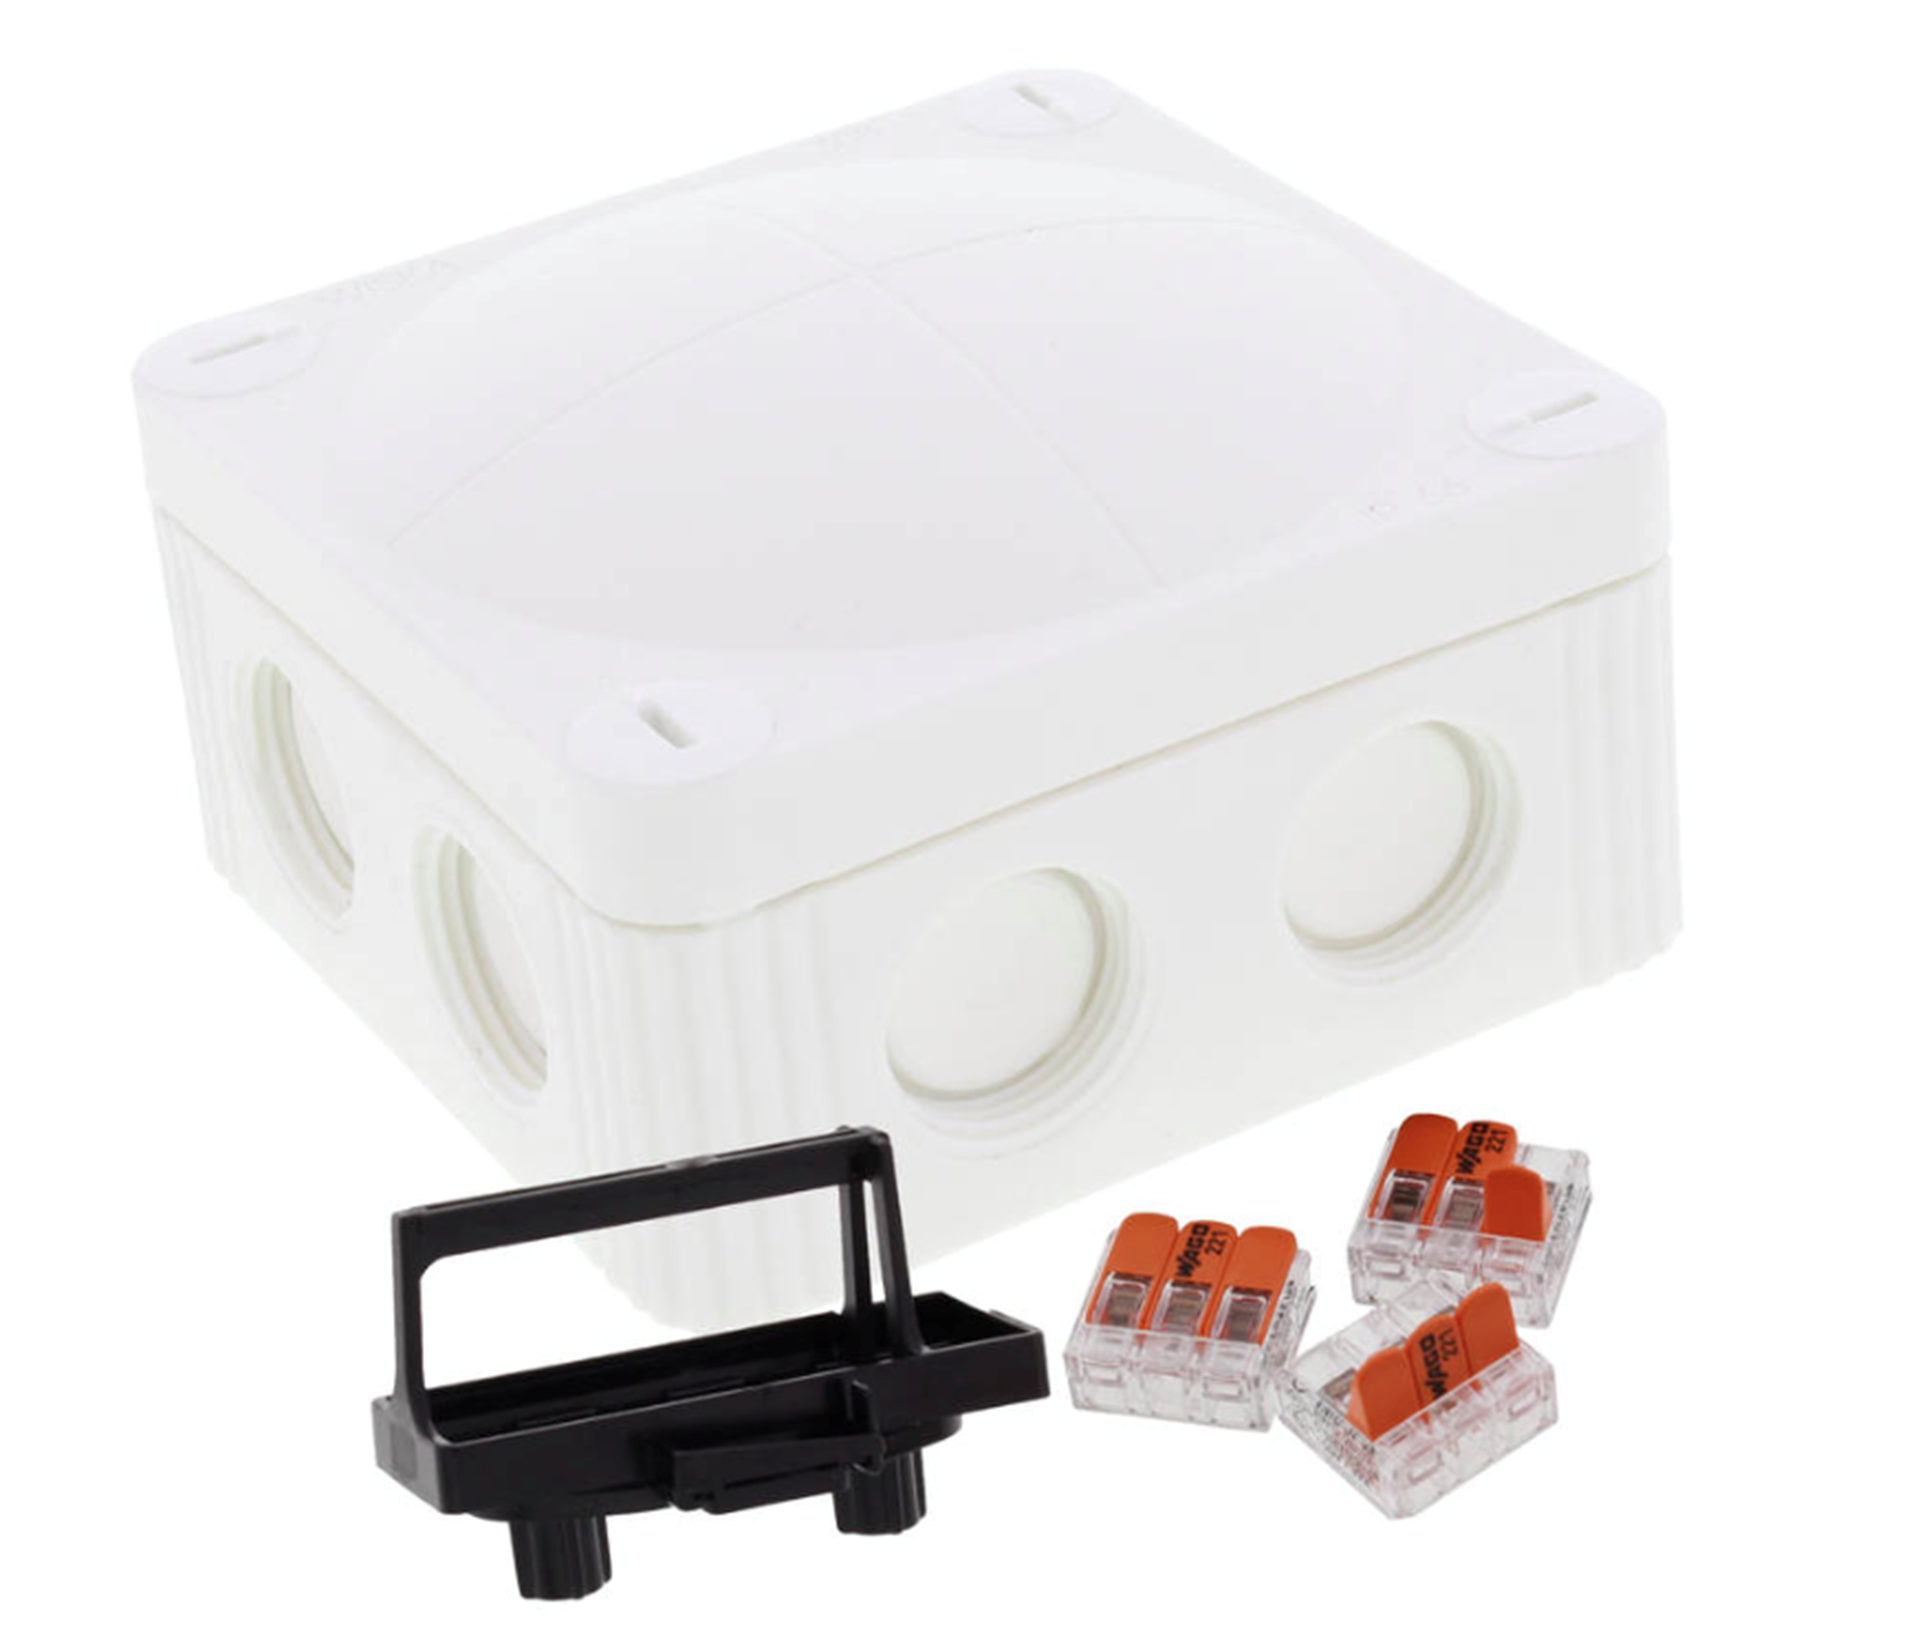 COMBI 308/221 Junction box Inc. 3 x 3 pole WAGO connectors & Mounting clip WH 10110405